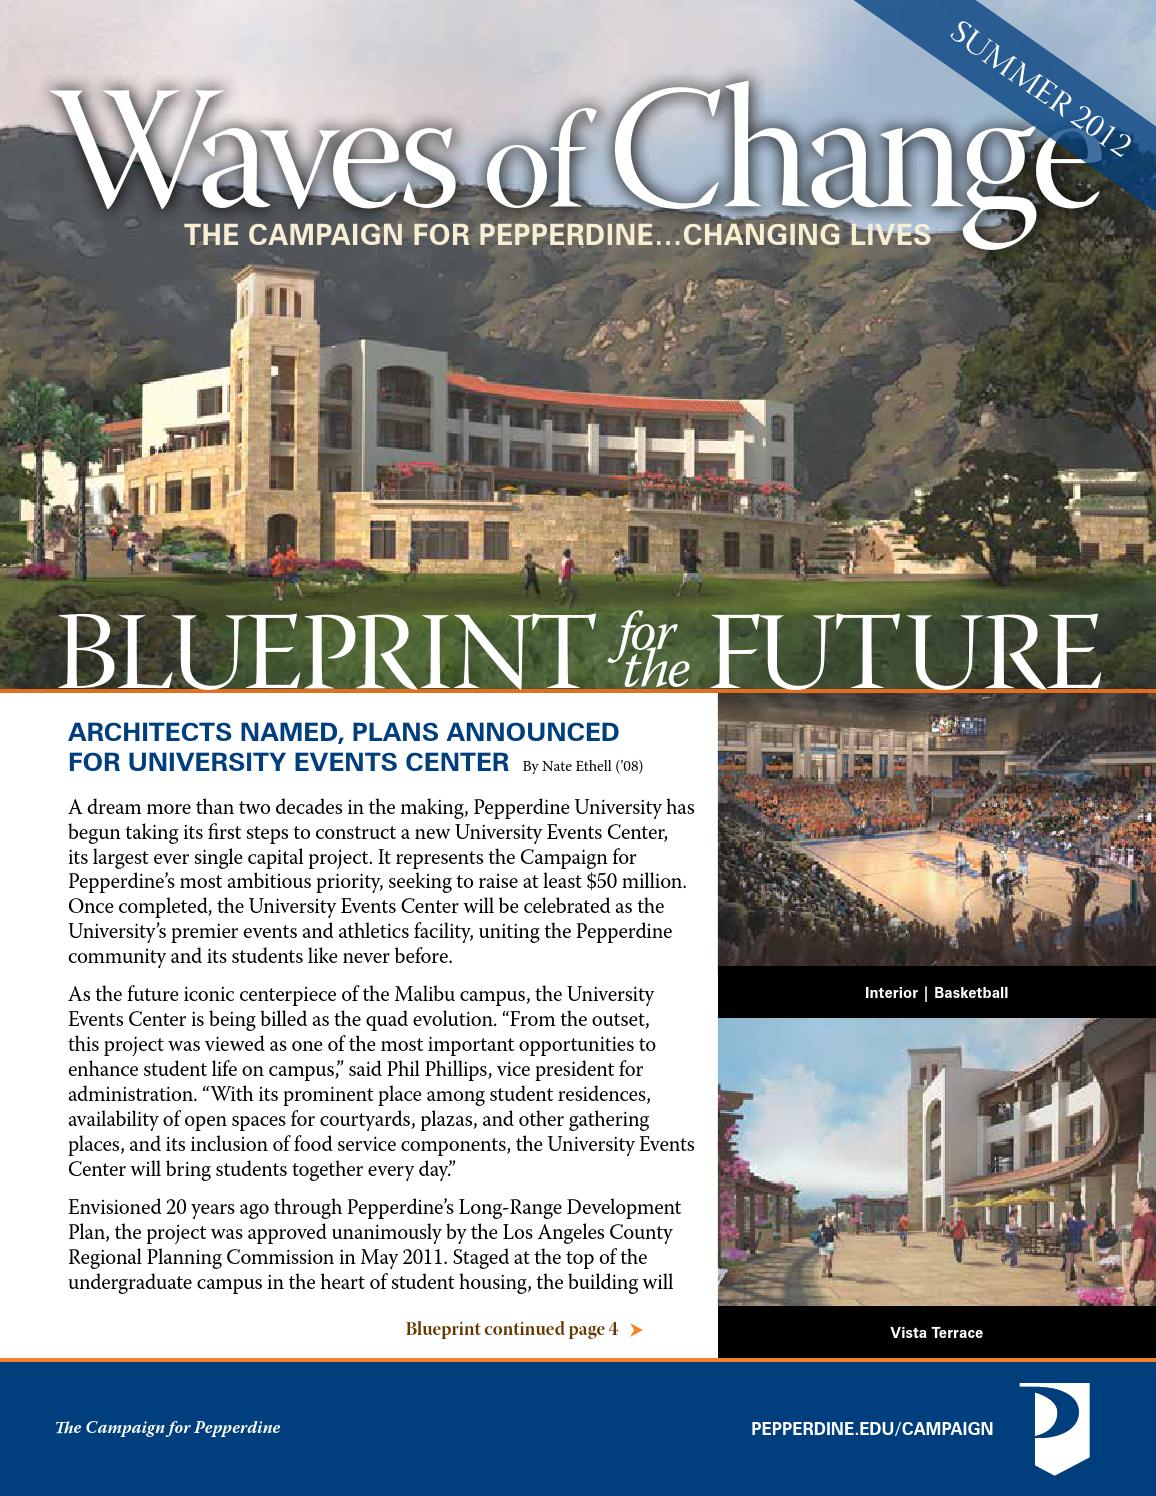 Waves of change 5 blueprint for the future summer 2012 by waves of change 5 blueprint for the future summer 2012 by pepperdine university issuu malvernweather Images